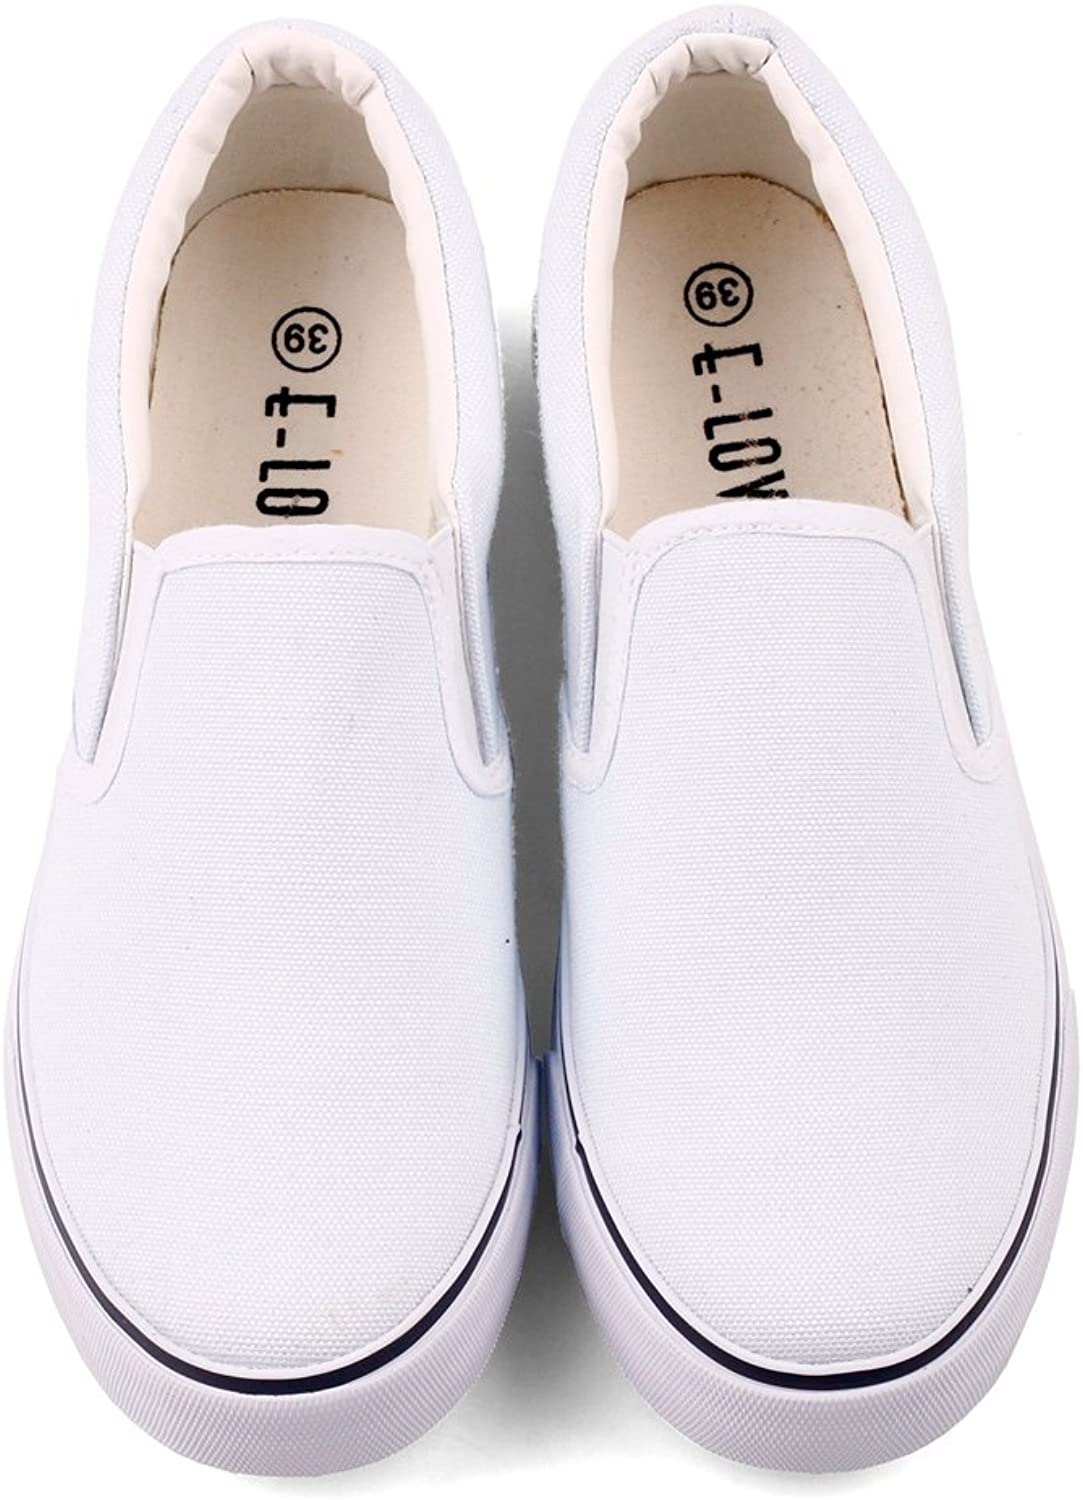 ElovForU White Low Top Blank Canvas shoes Adults Young Casual Loafers Women Men Summer Spring Slip On Flats Sports shoes Footwear (9 M US Women   7.5 M US Men  CN41, White)